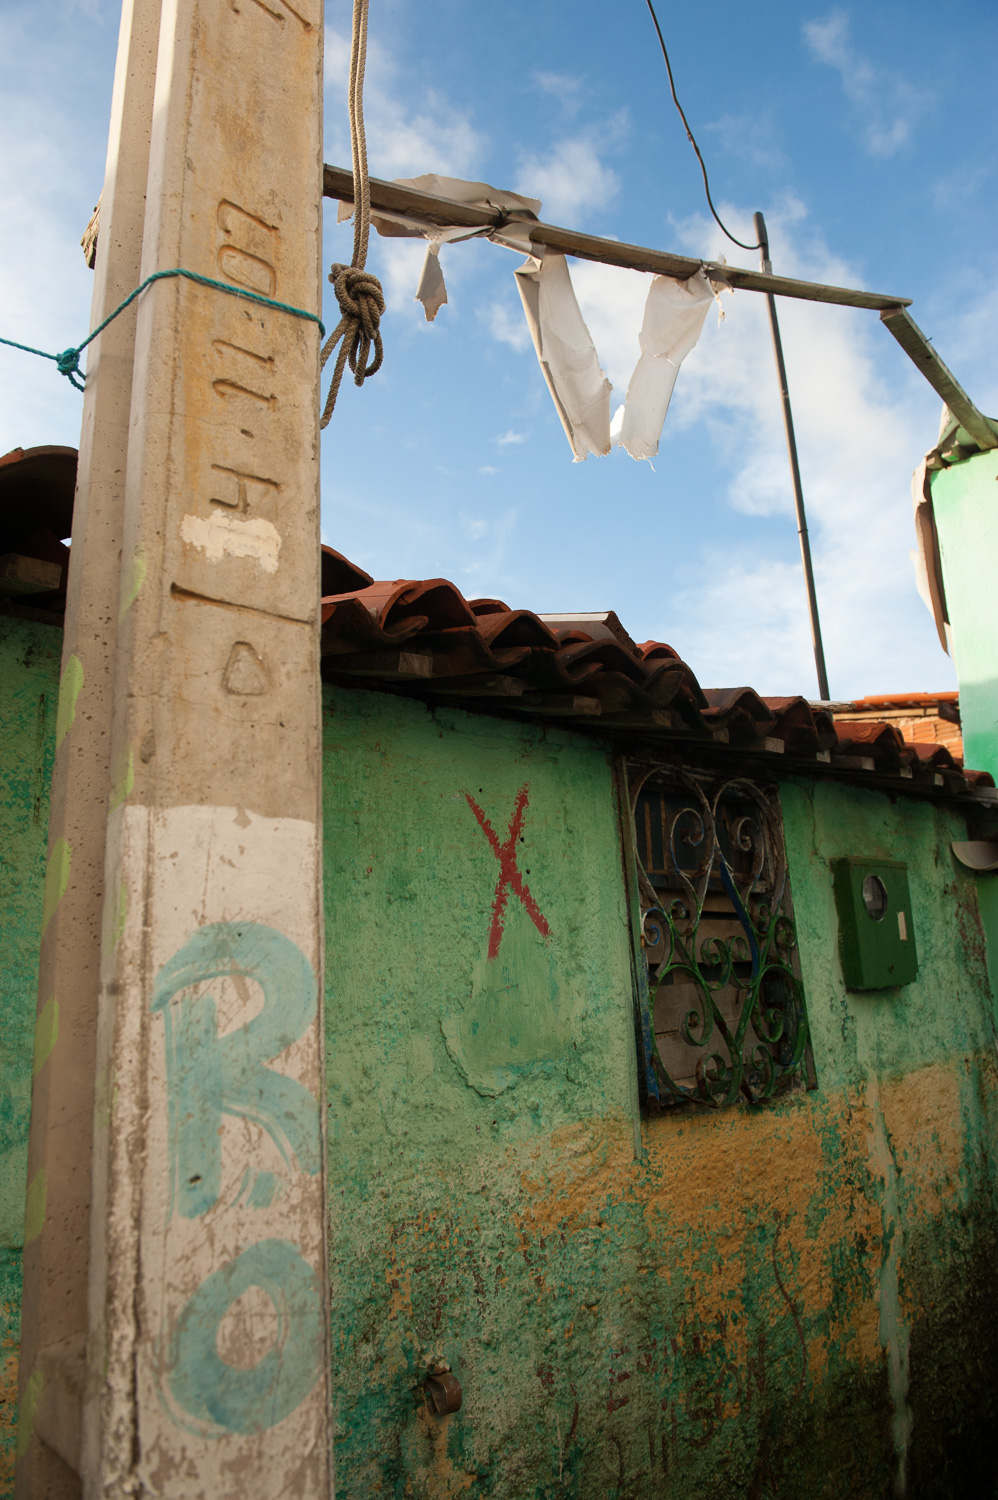 A modest favela (slum) home in the City of Fortaleza is tagged for demolition, the only notice that the City of Fortaleza gives residents of its plans to demolish the home.